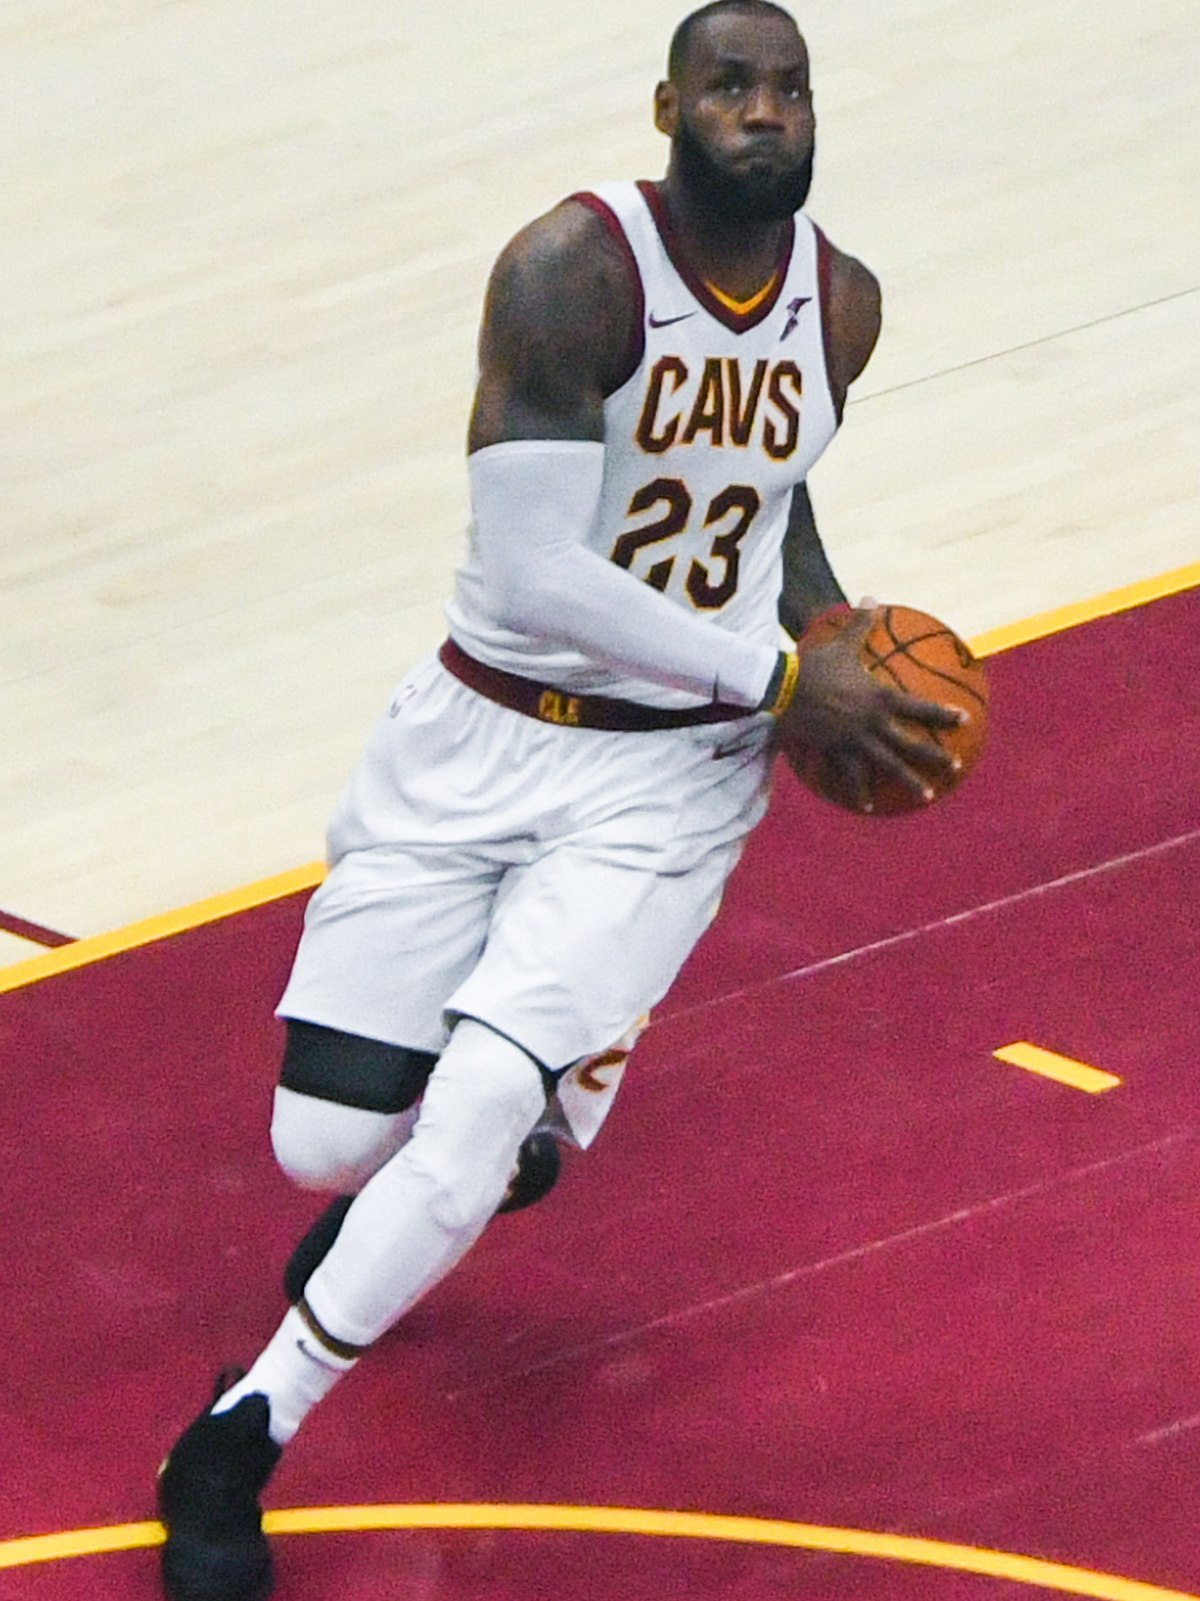 pretty nice 532c9 24913 LeBron James - Wikipedia, la enciclopedia libre